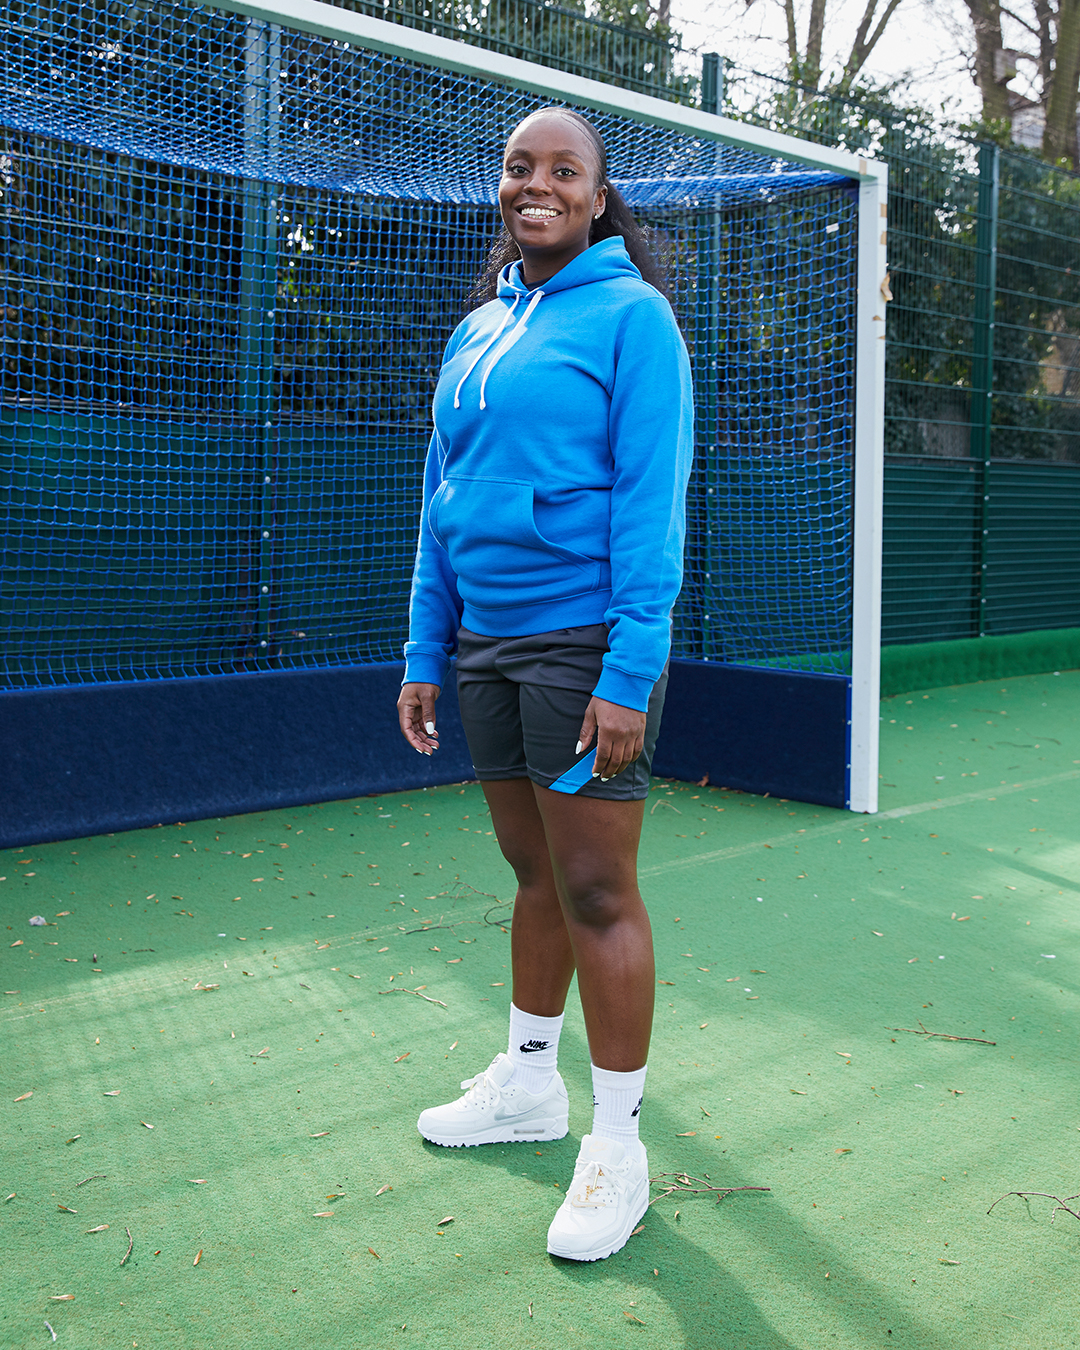 Shanice is a PE Teacher that is pioneering female inclusion in the culture – she's also a big Air Max fan